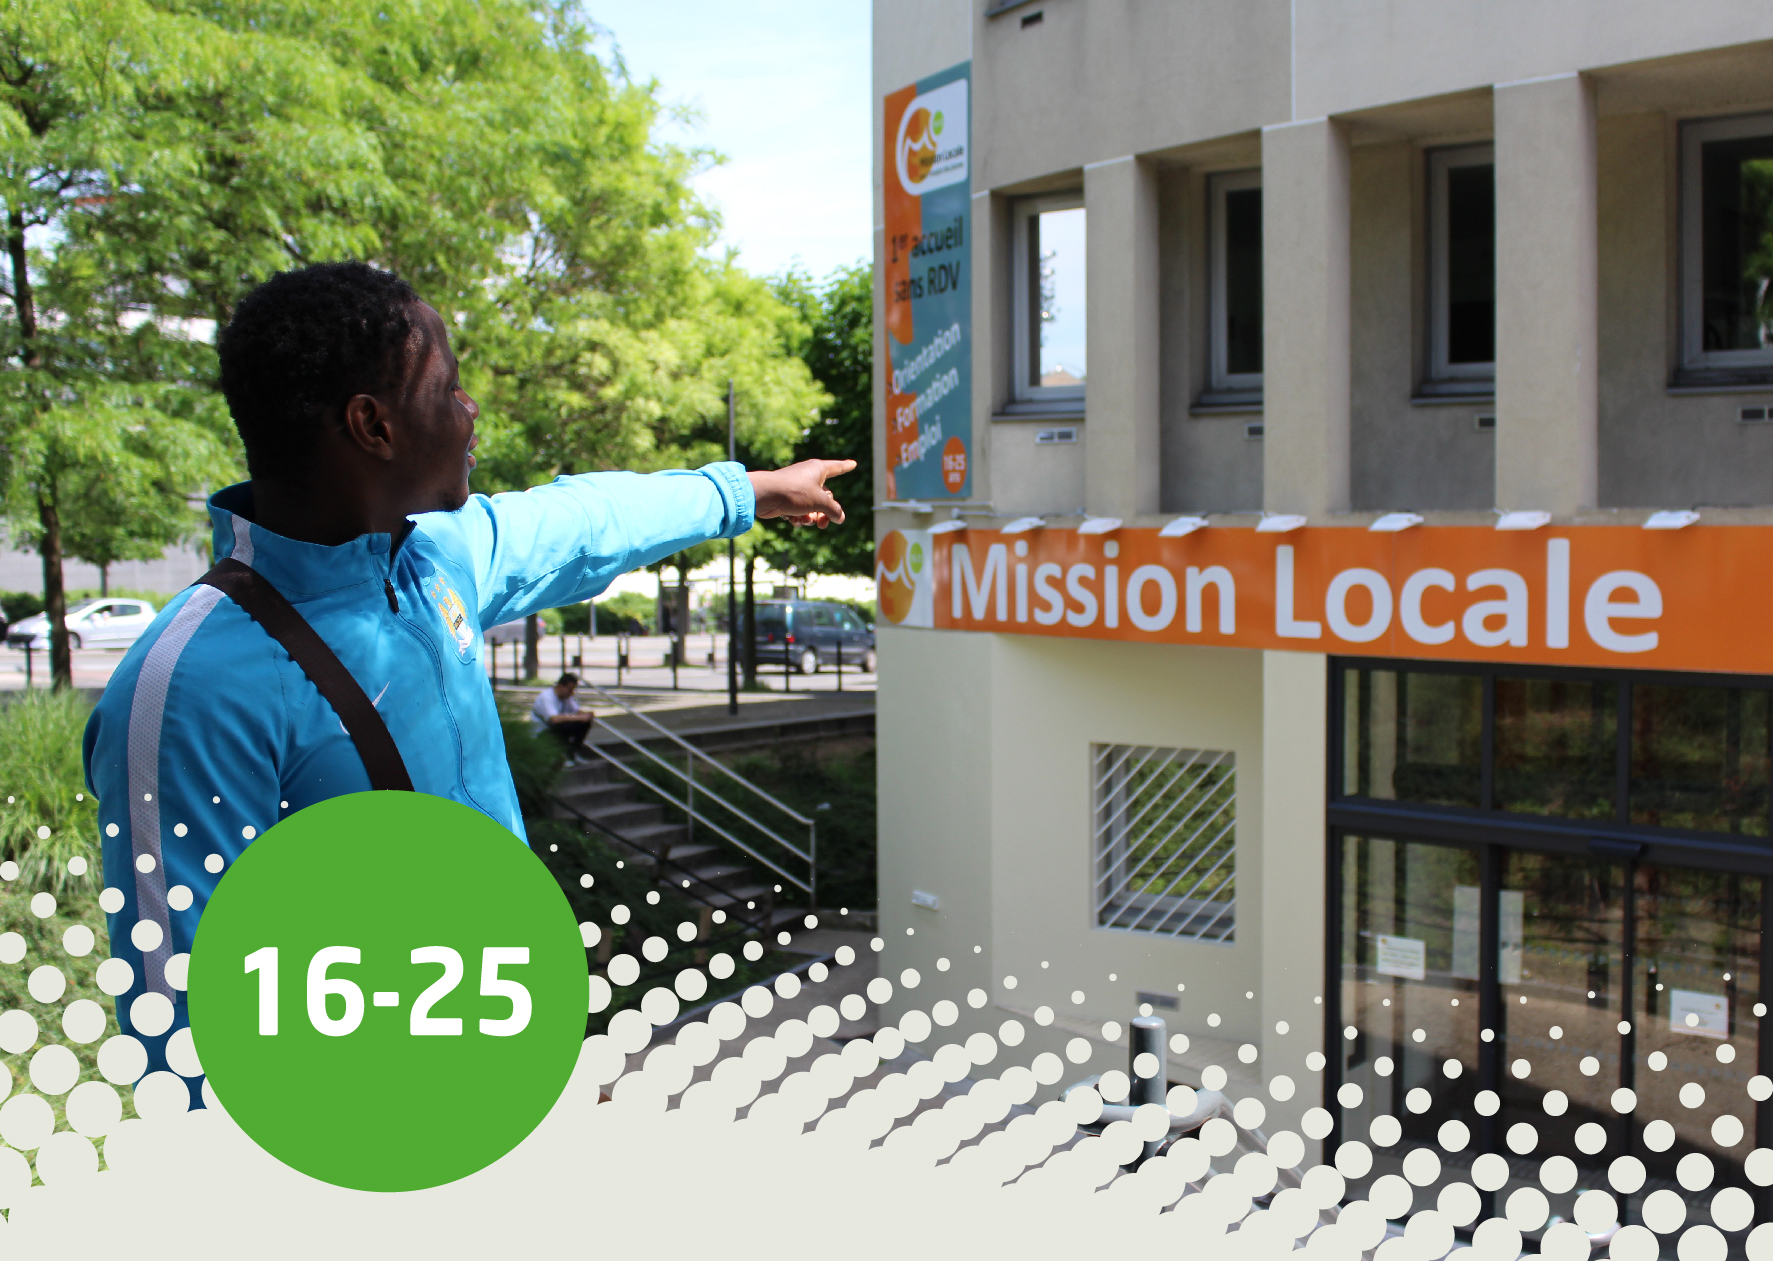 image-mission-locale-ivry-vitry